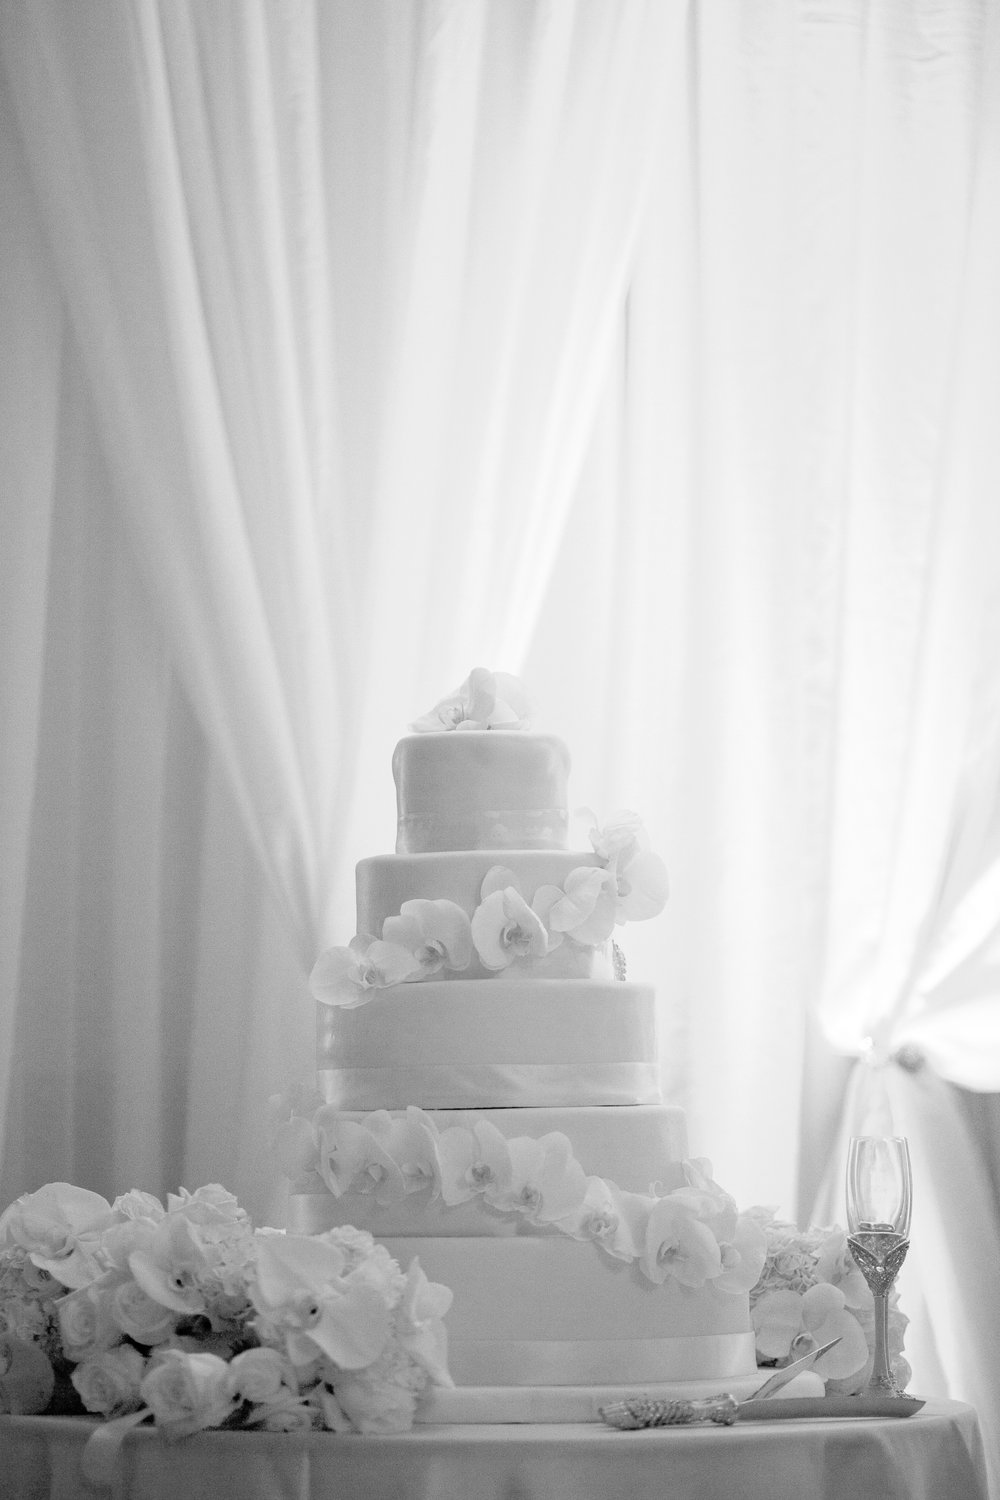 Five tier wedding cake with white flower design